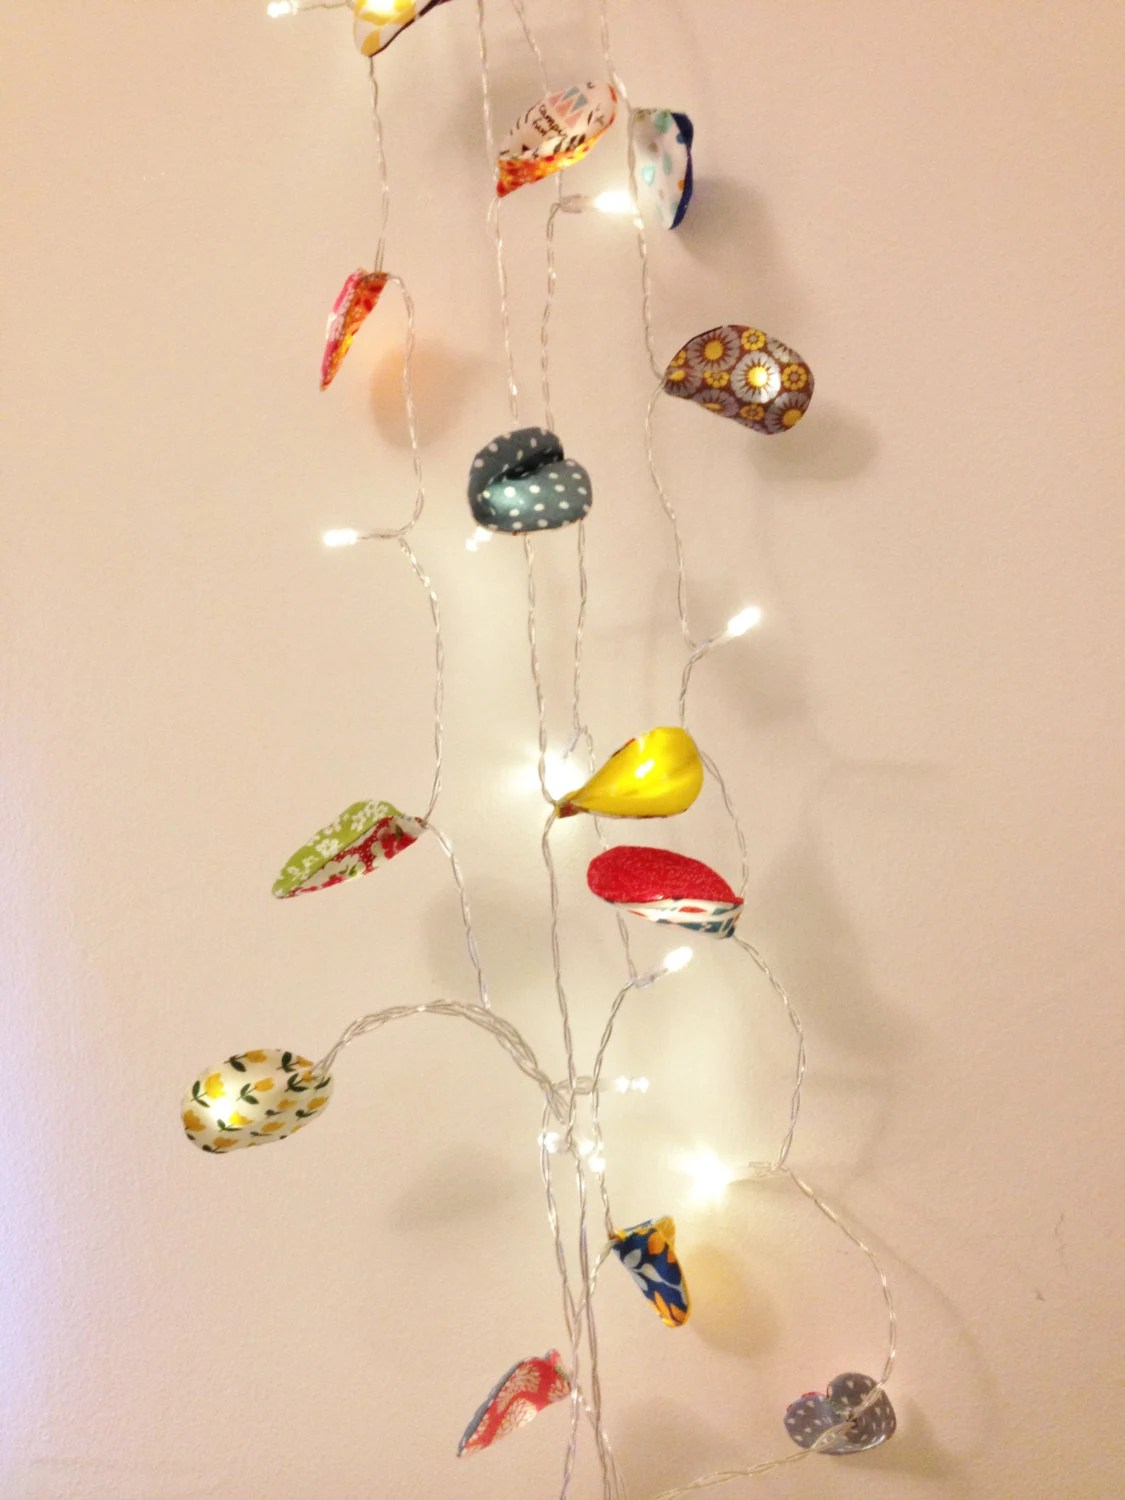 Fairy Lights Kids Room 50 Fairy Lights String Lights Children 39s Room By Zebrazoet